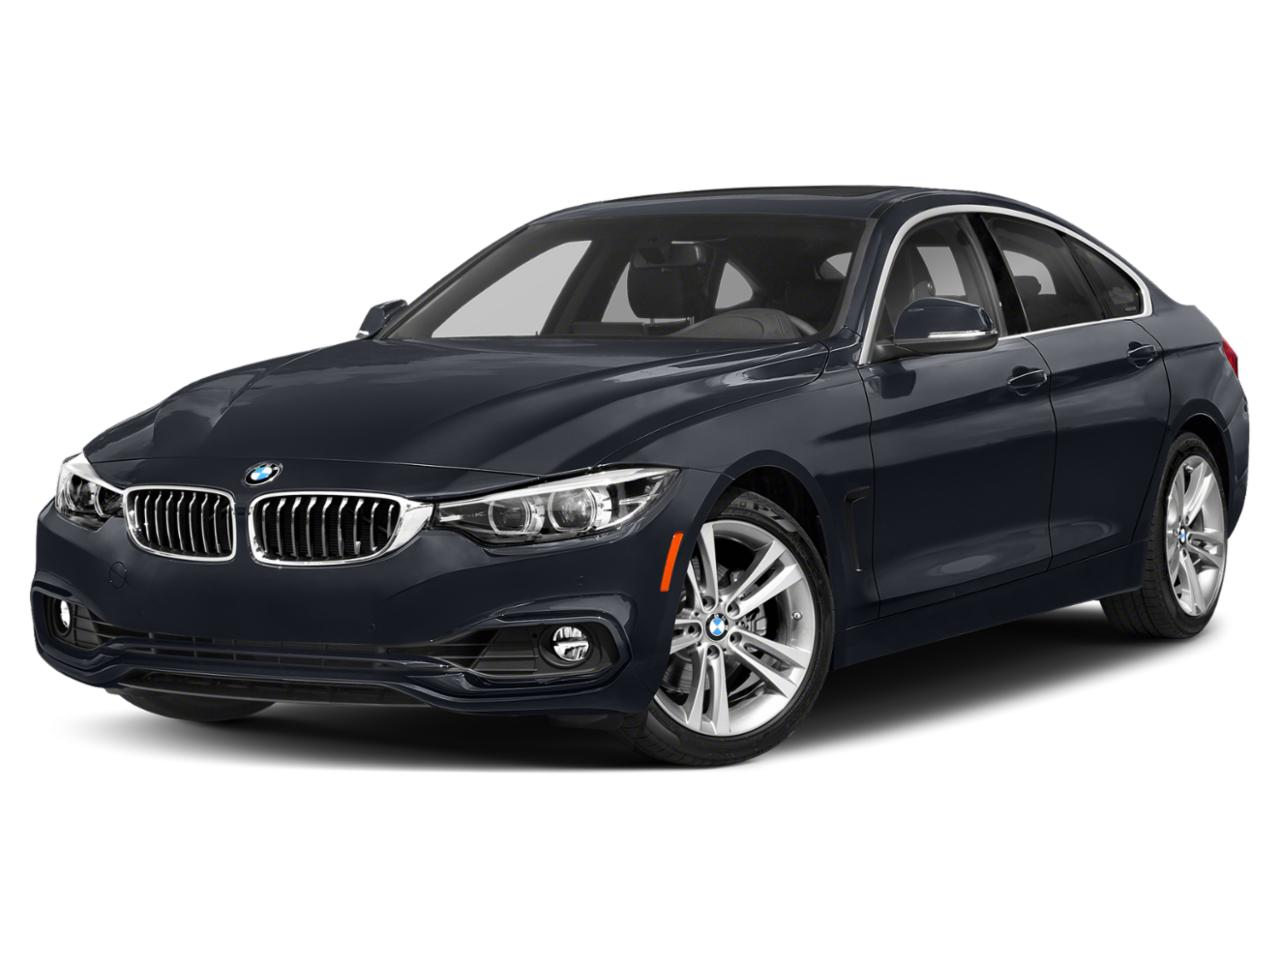 2019 BMW 430i Vehicle Photo in TEMPLE, TX 76504-3447